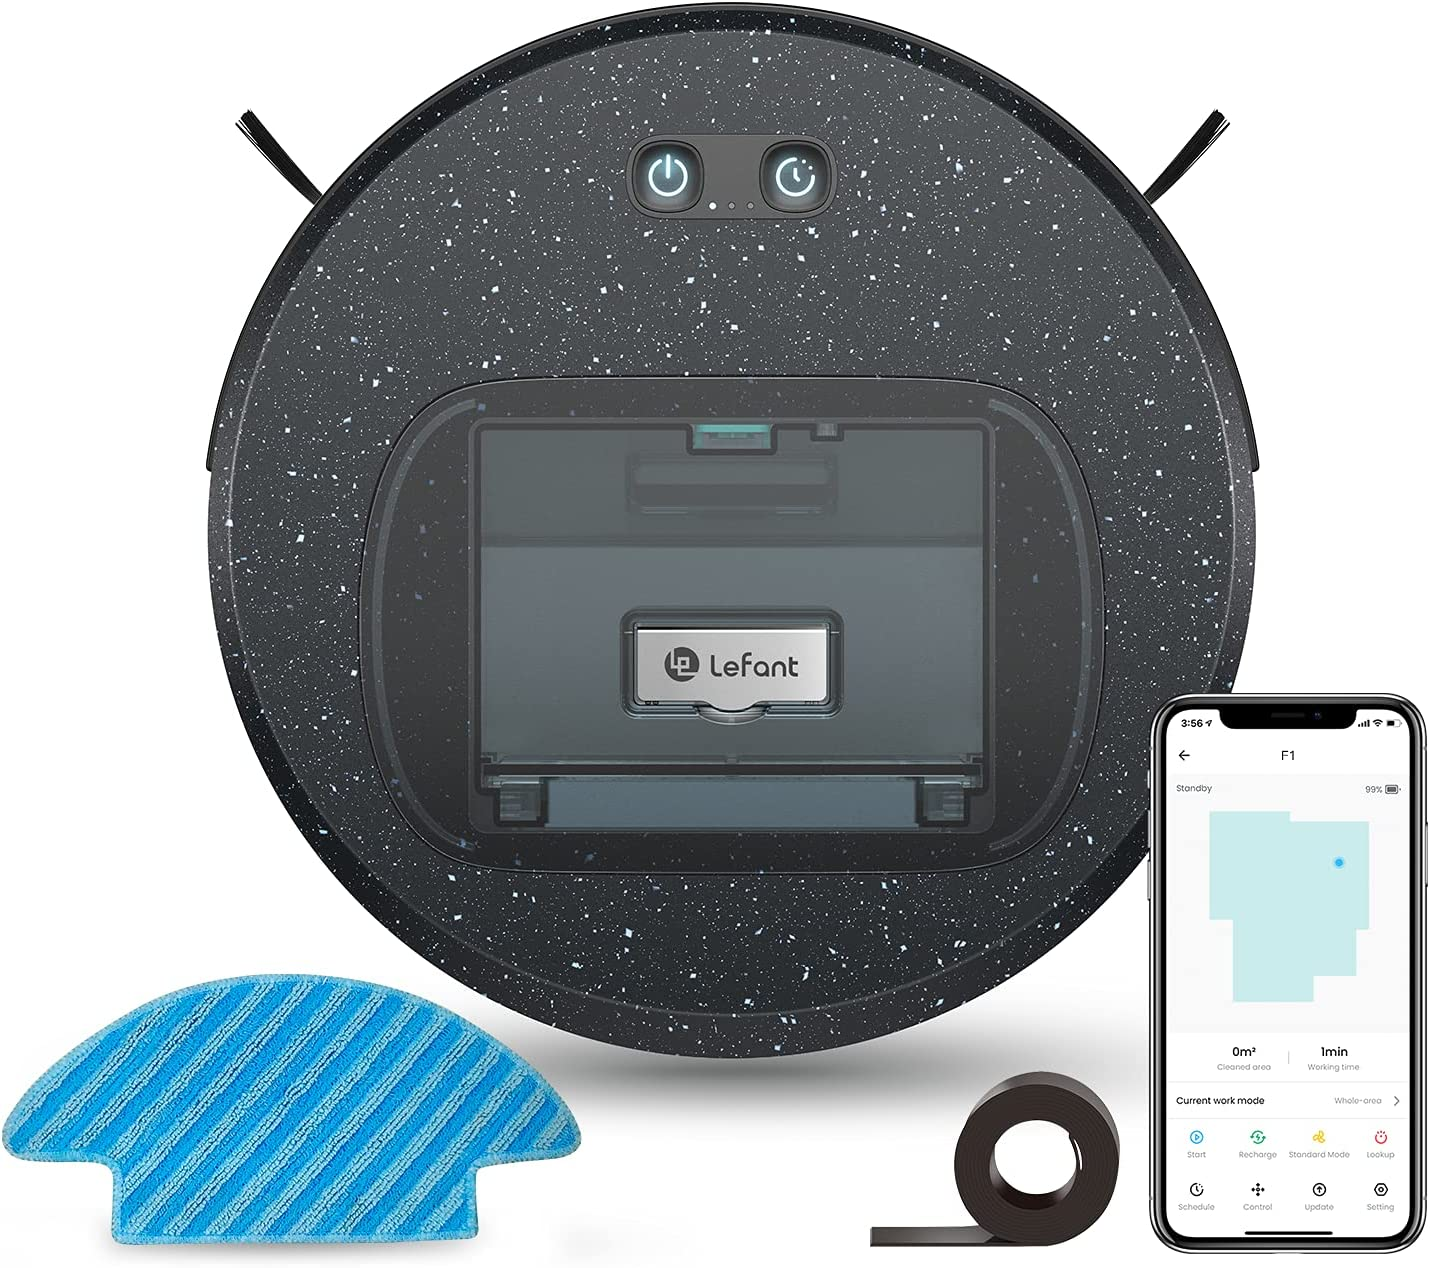 Max 43% OFF Lefant F1 Robot Vacuum Cleaner wit and Large discharge sale Robotic Combo Mop